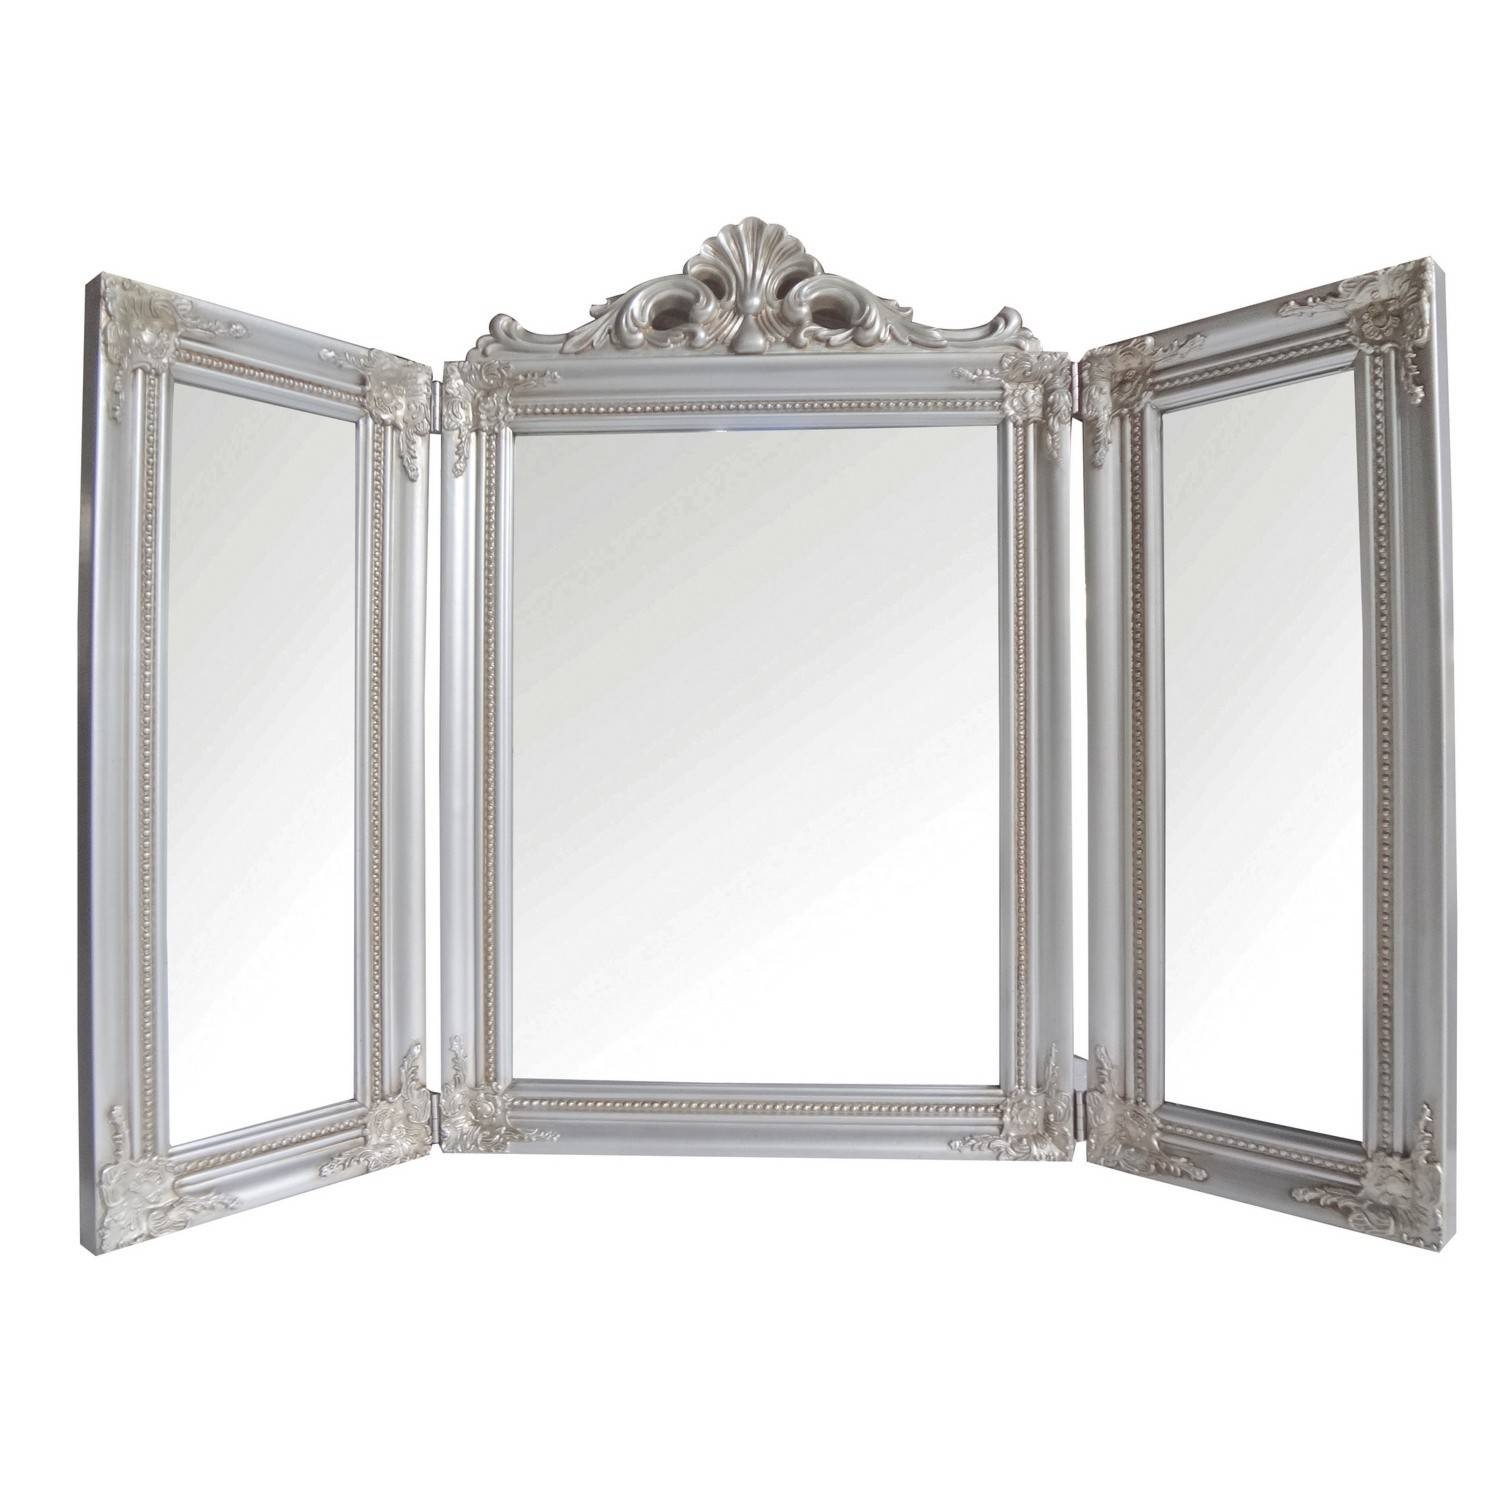 Dressing Table Mirror Share On To Decorating Ideas intended for Dressing Mirrors (Image 15 of 25)